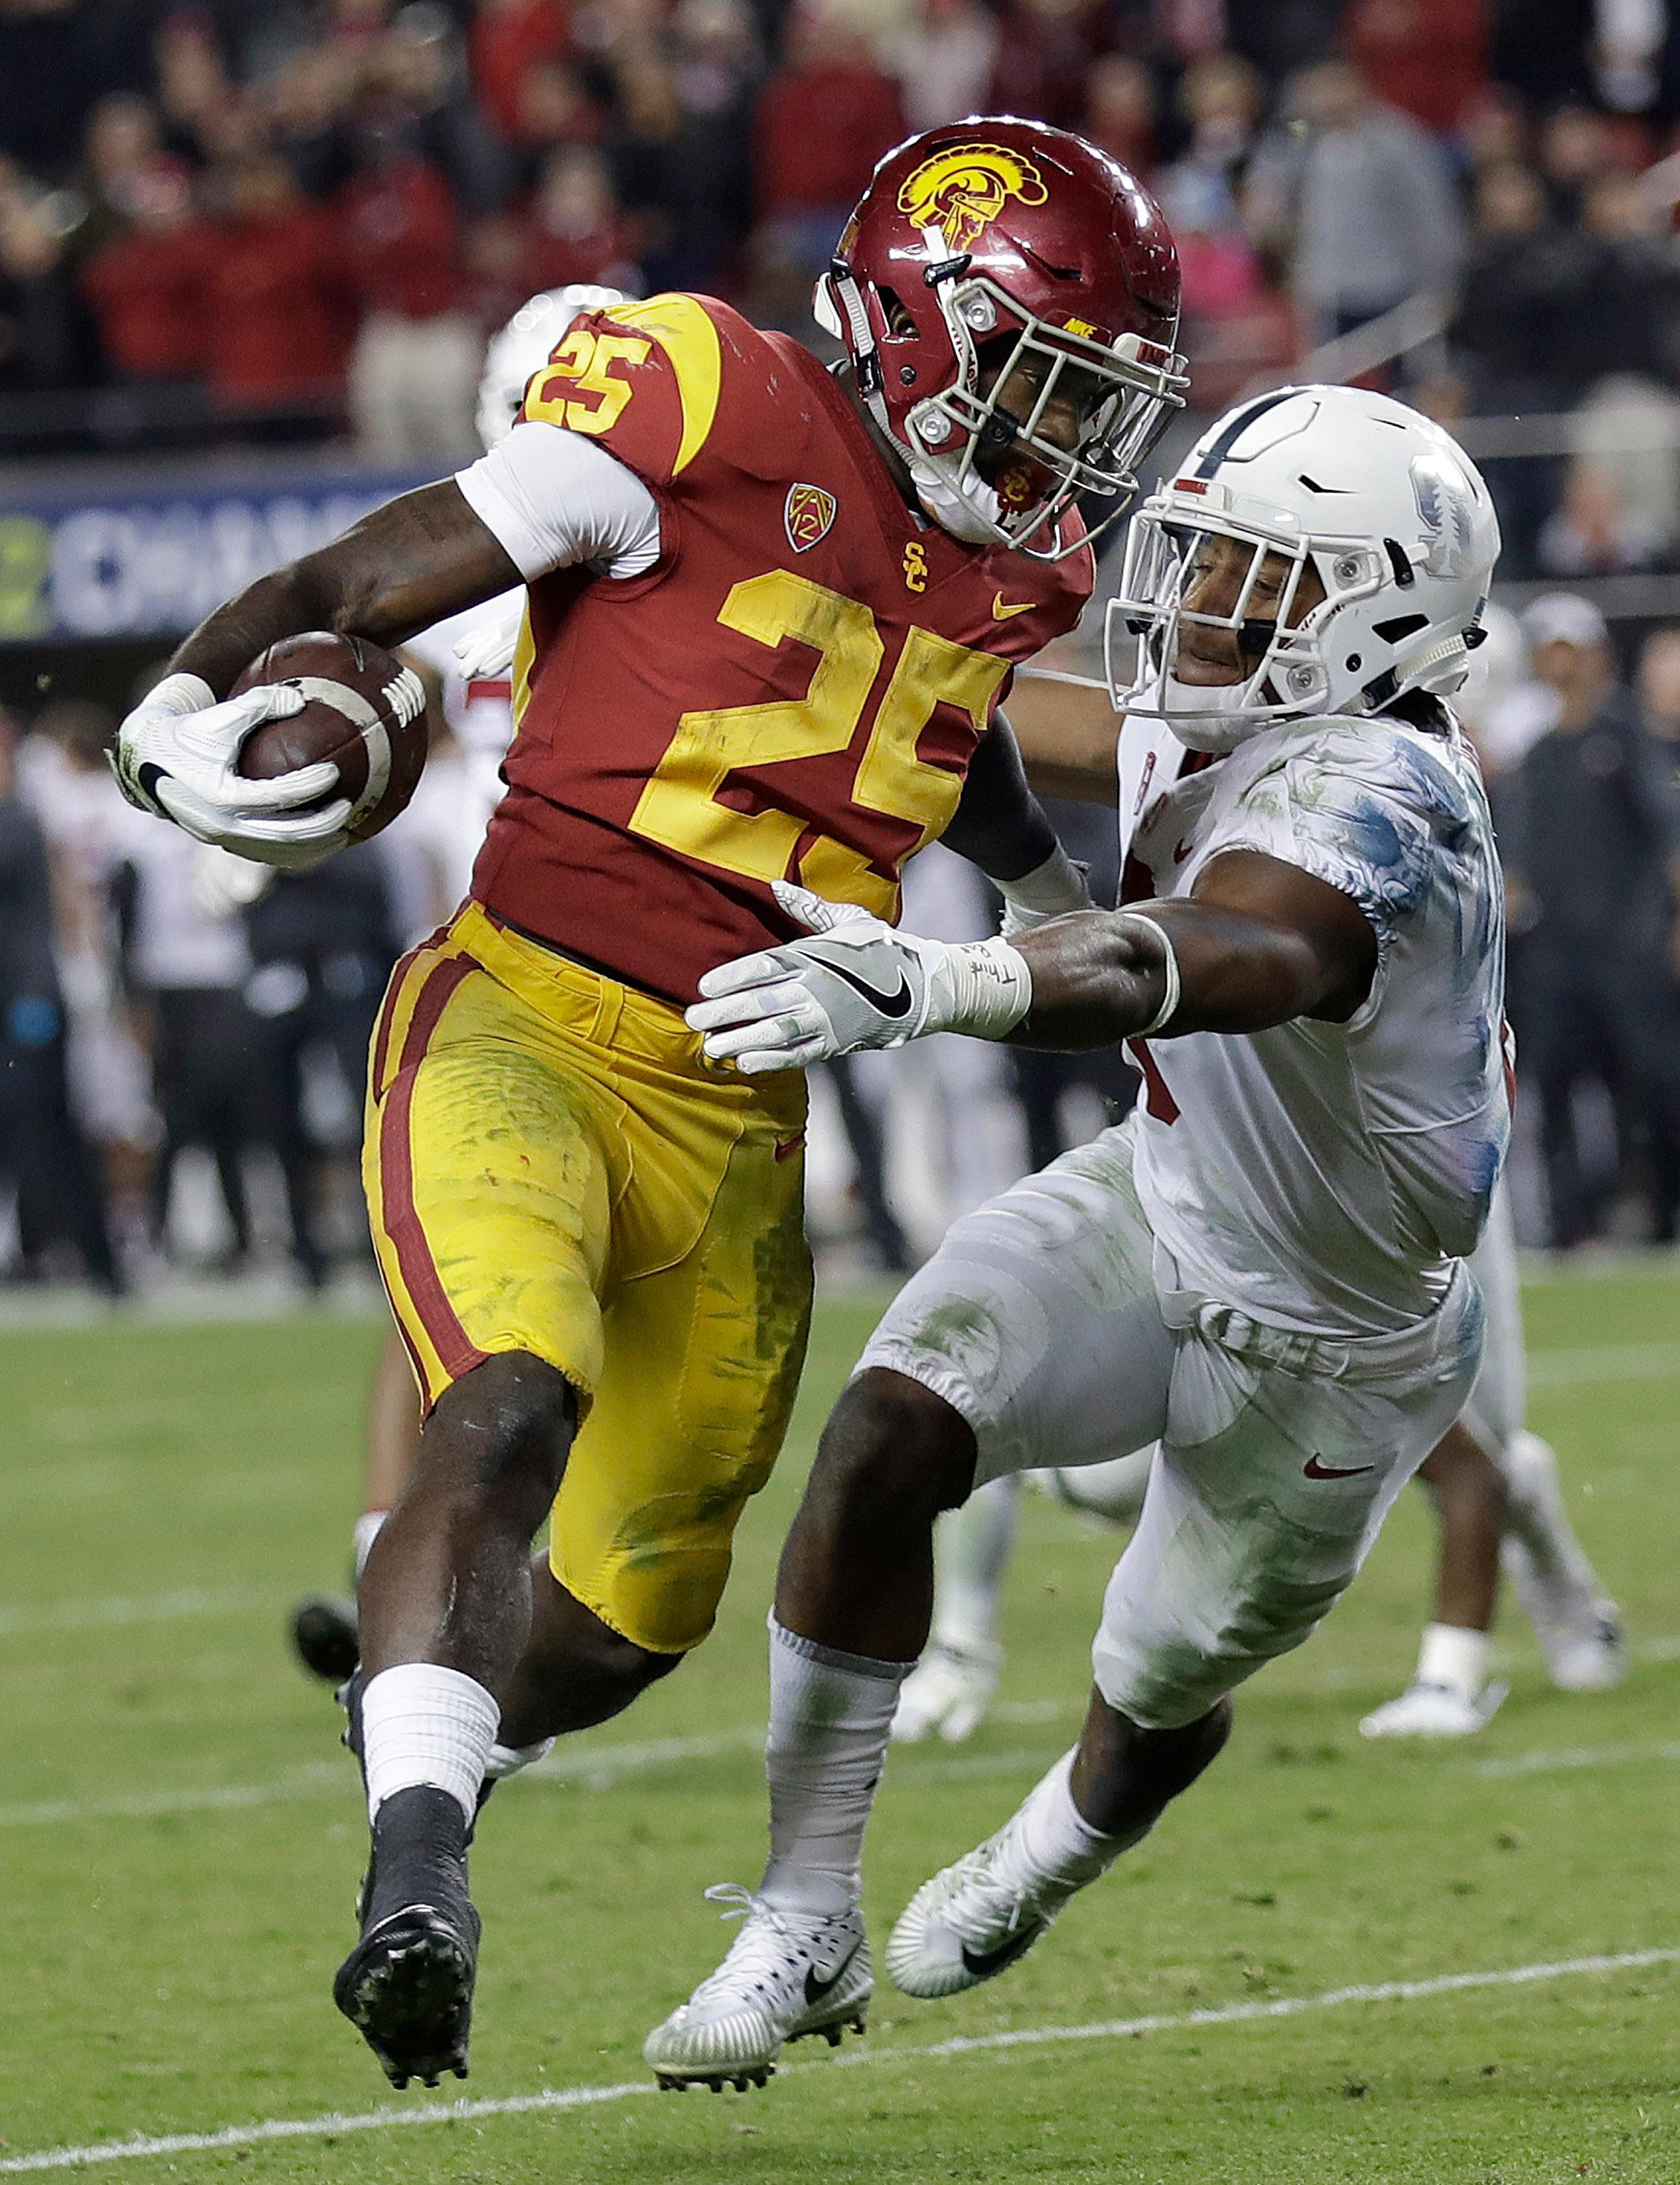 Southern California running back Ronald Jones II (25) runs past Stanford safety Justin Reid to score a touchdown during the second half of the Pac-12 Conference championship NCAA college football game in Santa Clara, Calif., Friday, Dec. 1, 2017. (AP Photo/Marcio Jose Sanchez)